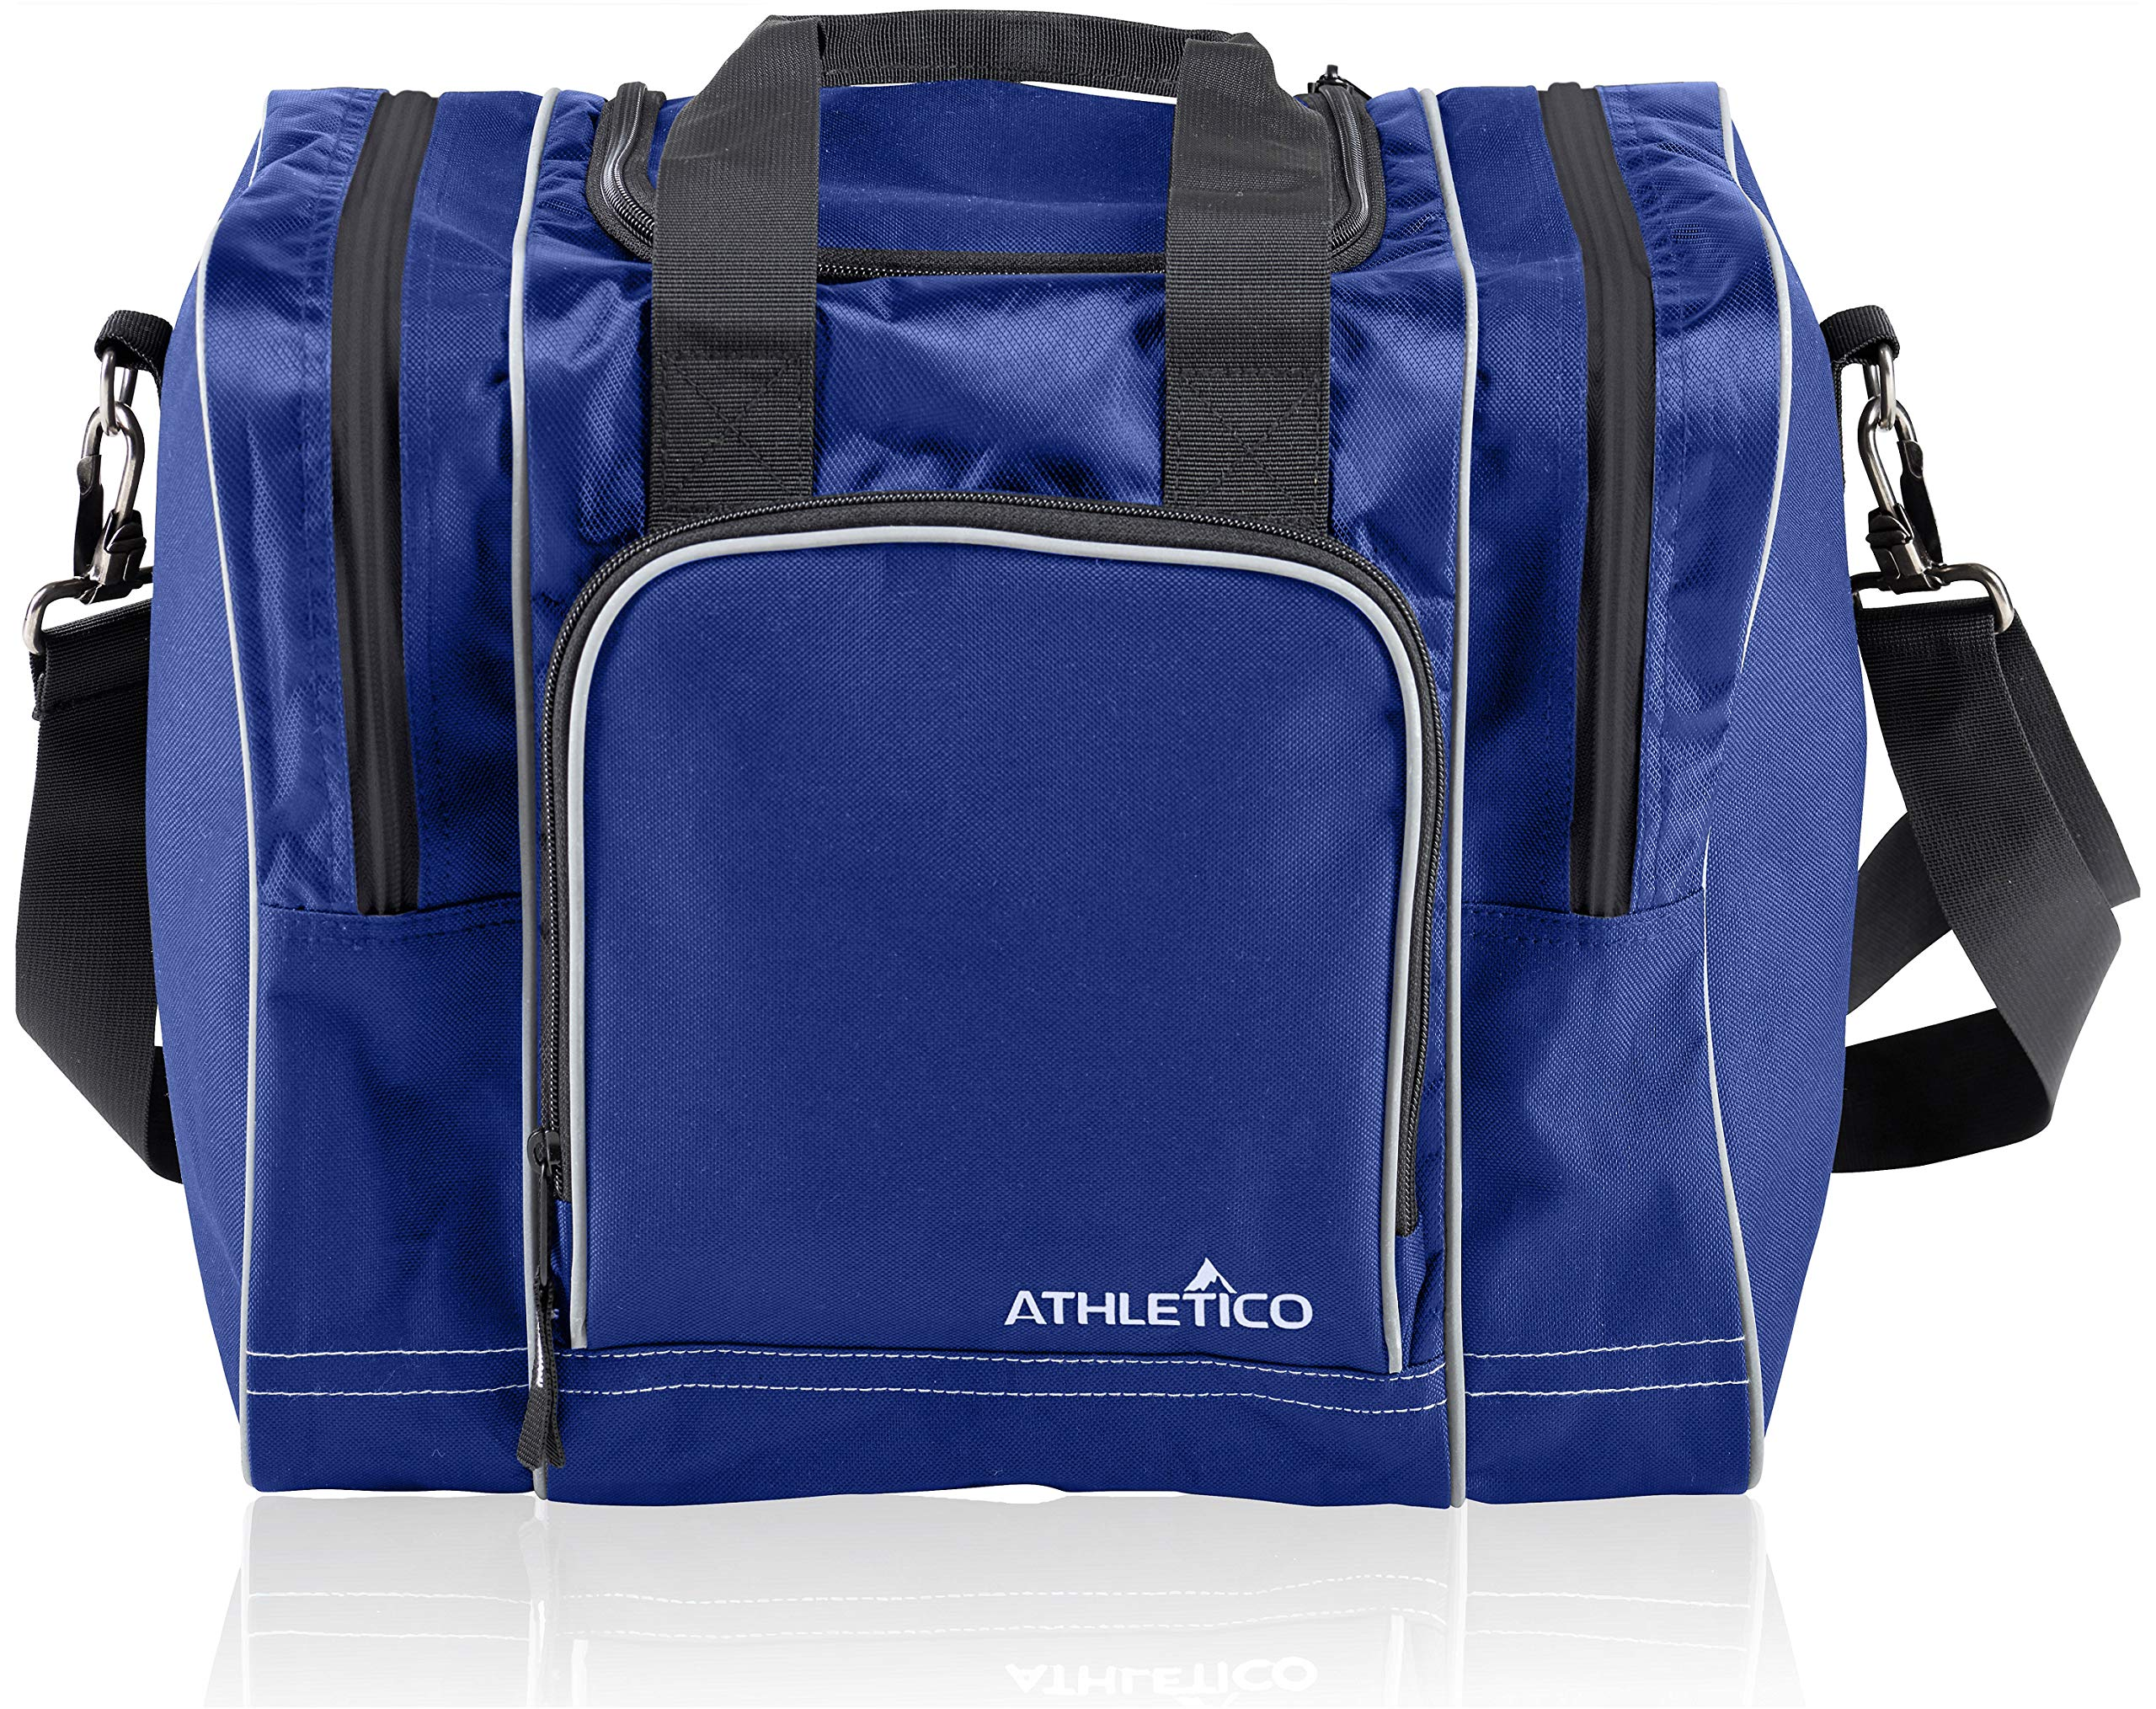 Athletico Bowling Bag for Single Ball - Single Ball Tote Bag with Padded Ball Holder - Fits a Single Pair of Bowling Shoes Up to Mens Size 14 (Blue) by Athletico